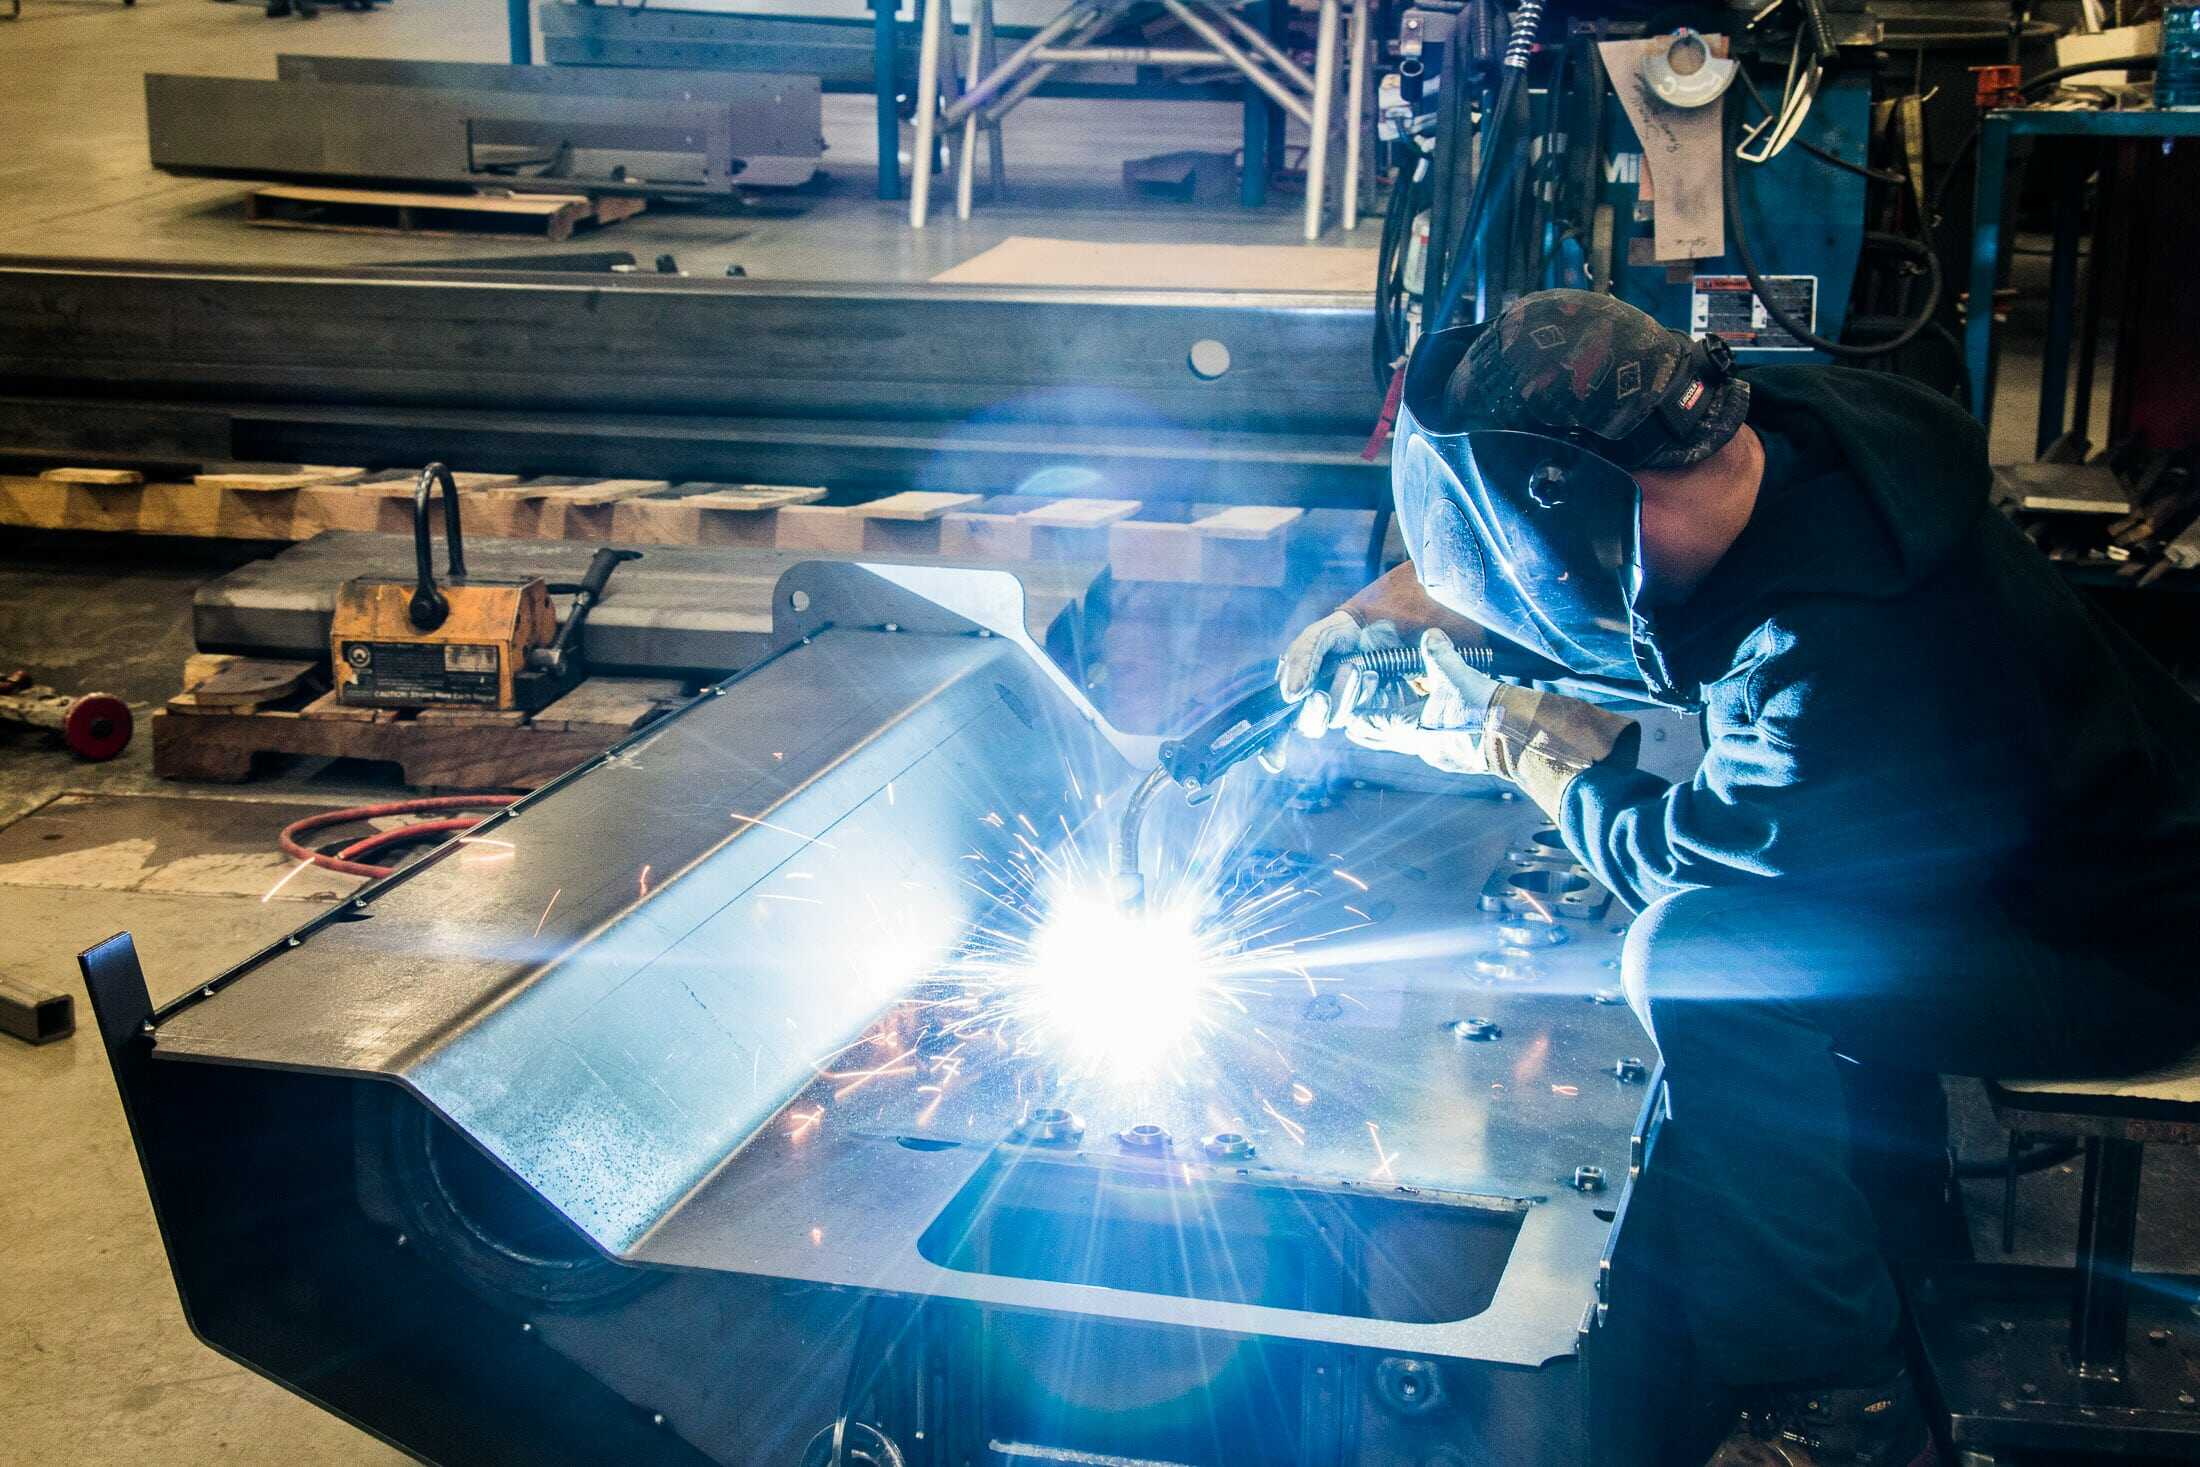 Badger Sheet Metal Works Builds Reputation for Custom Fabrication